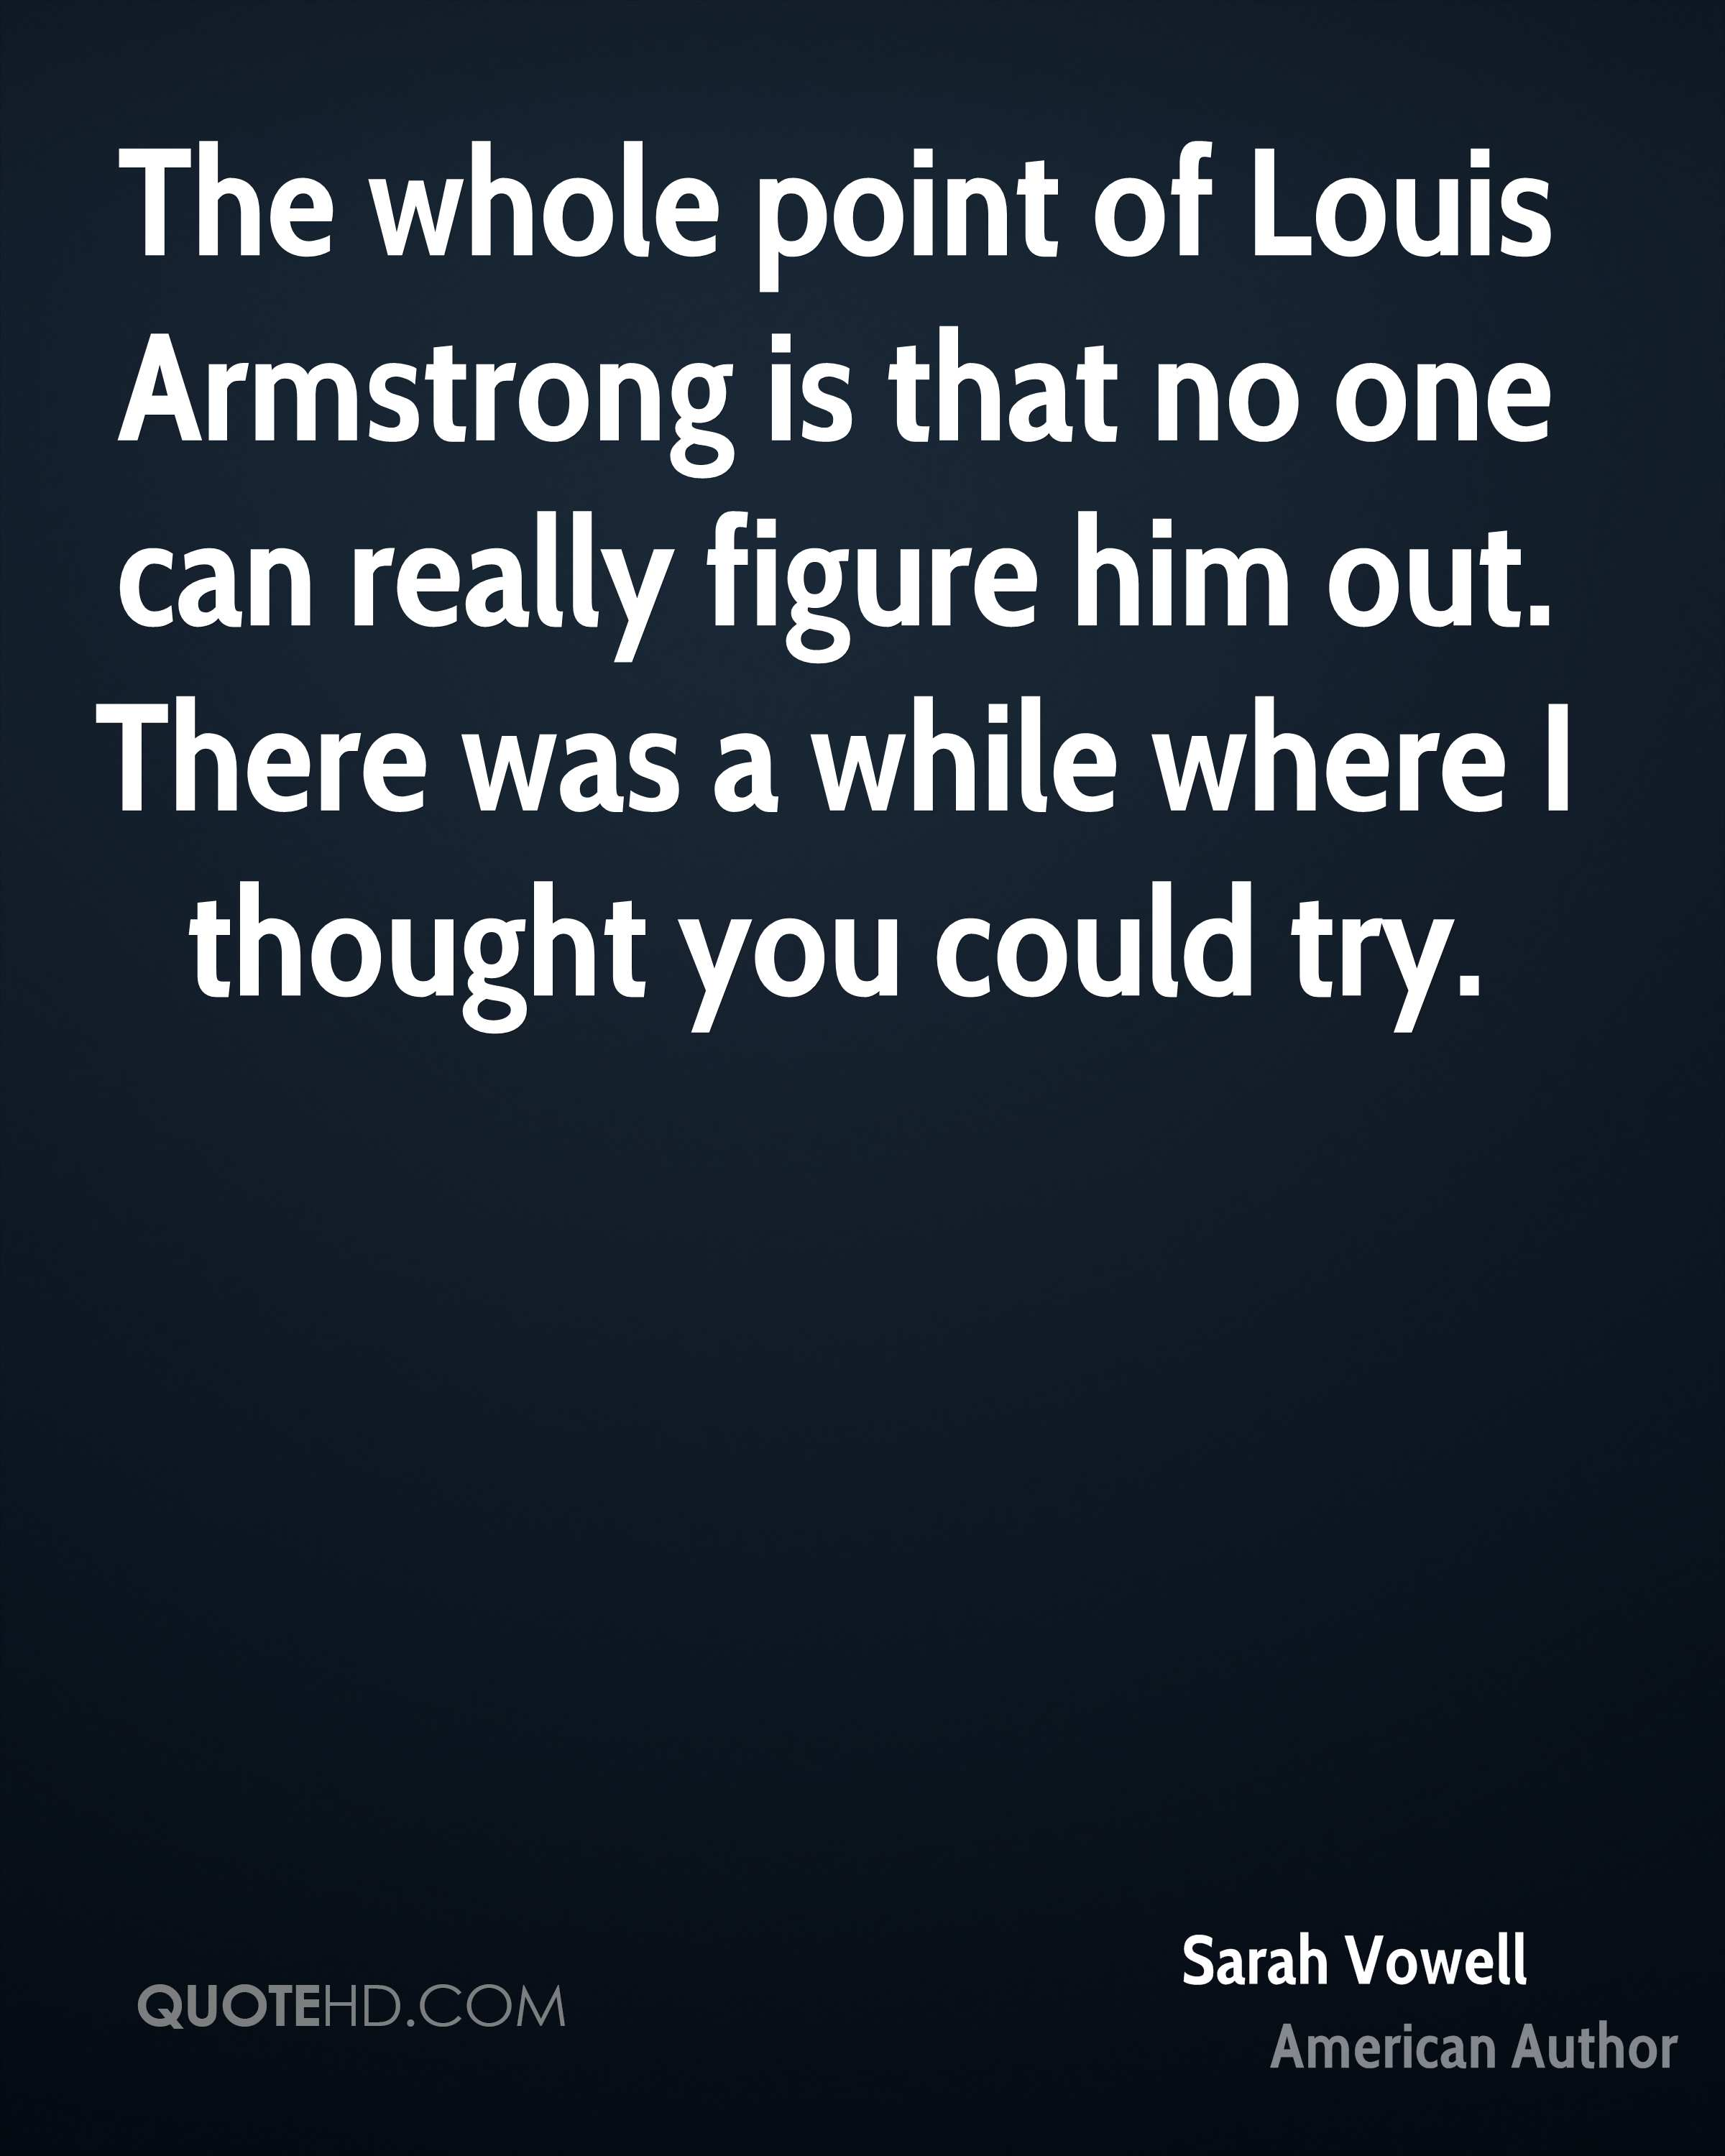 The whole point of Louis Armstrong is that no one can really figure him out. There was a while where I thought you could try.